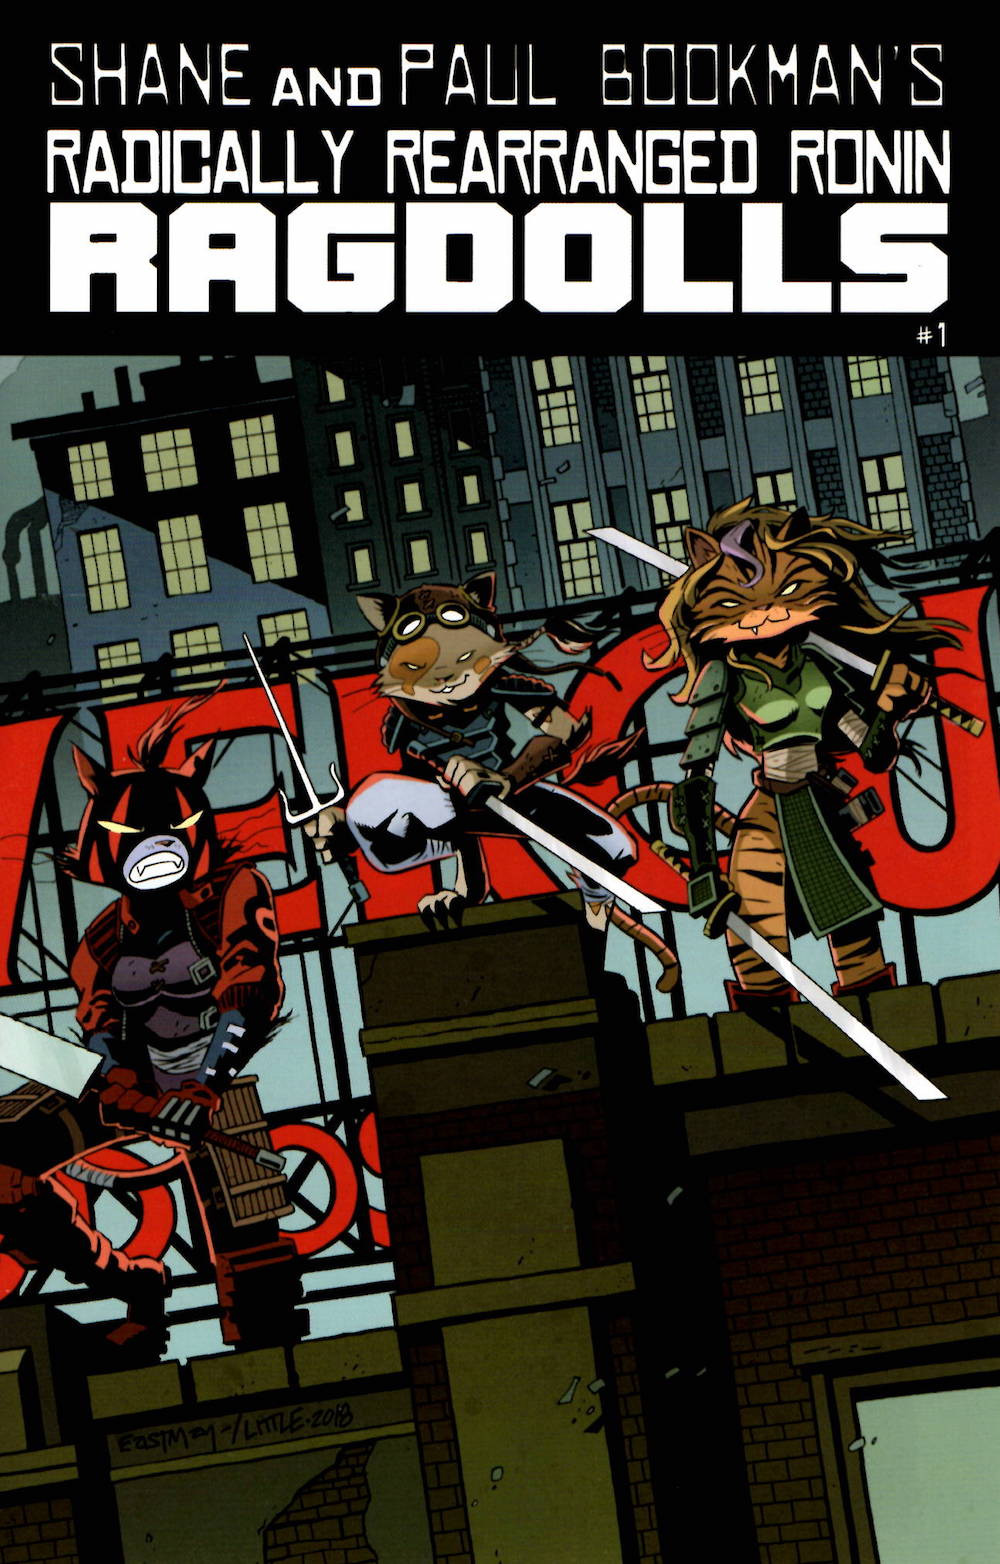 Radically Rearranged Ronin Ragdolls, issue #1, cover, self-published, Eastman/Avallone/Little